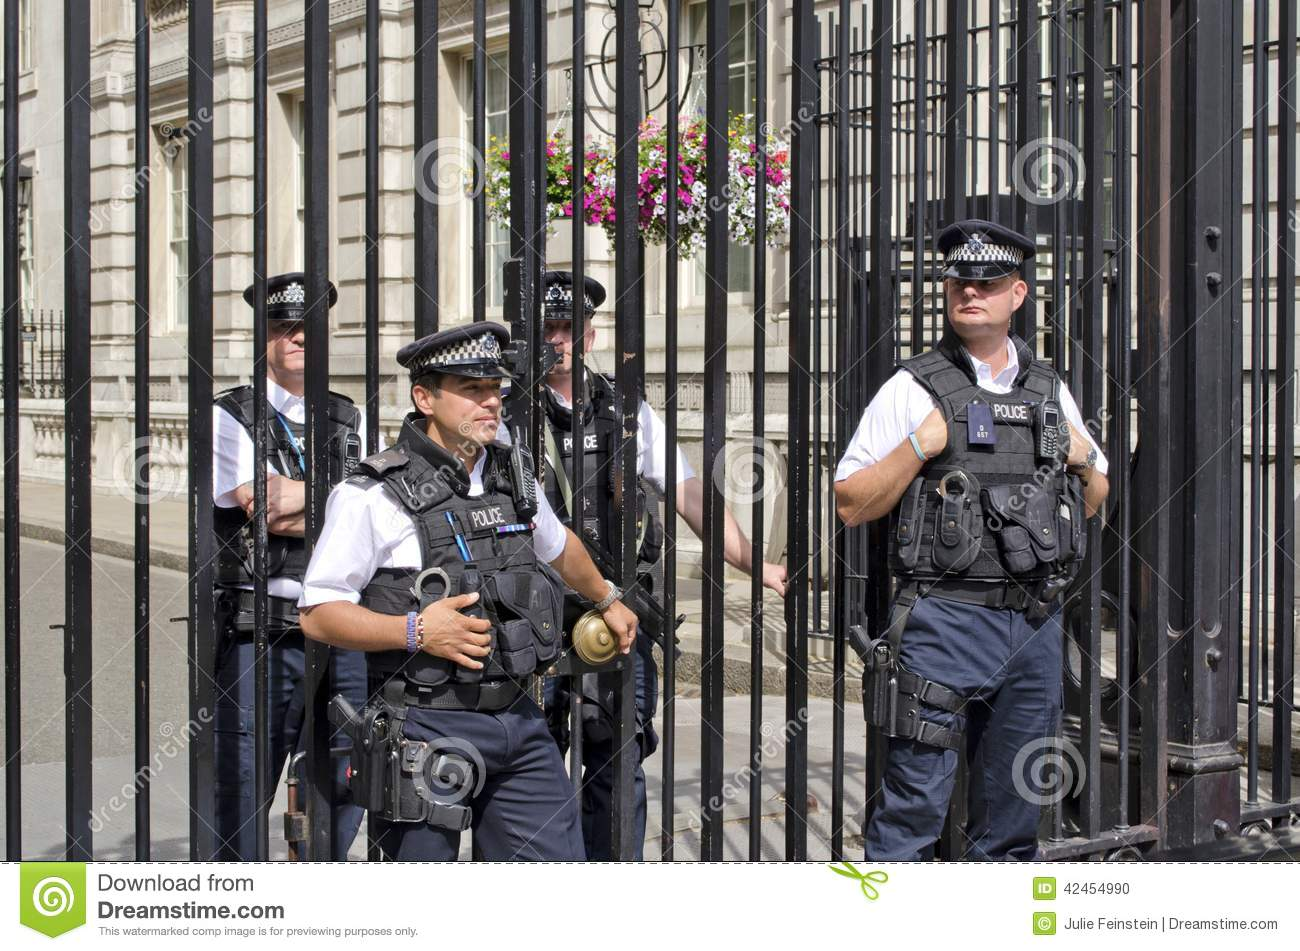 Downing street editorial image of security